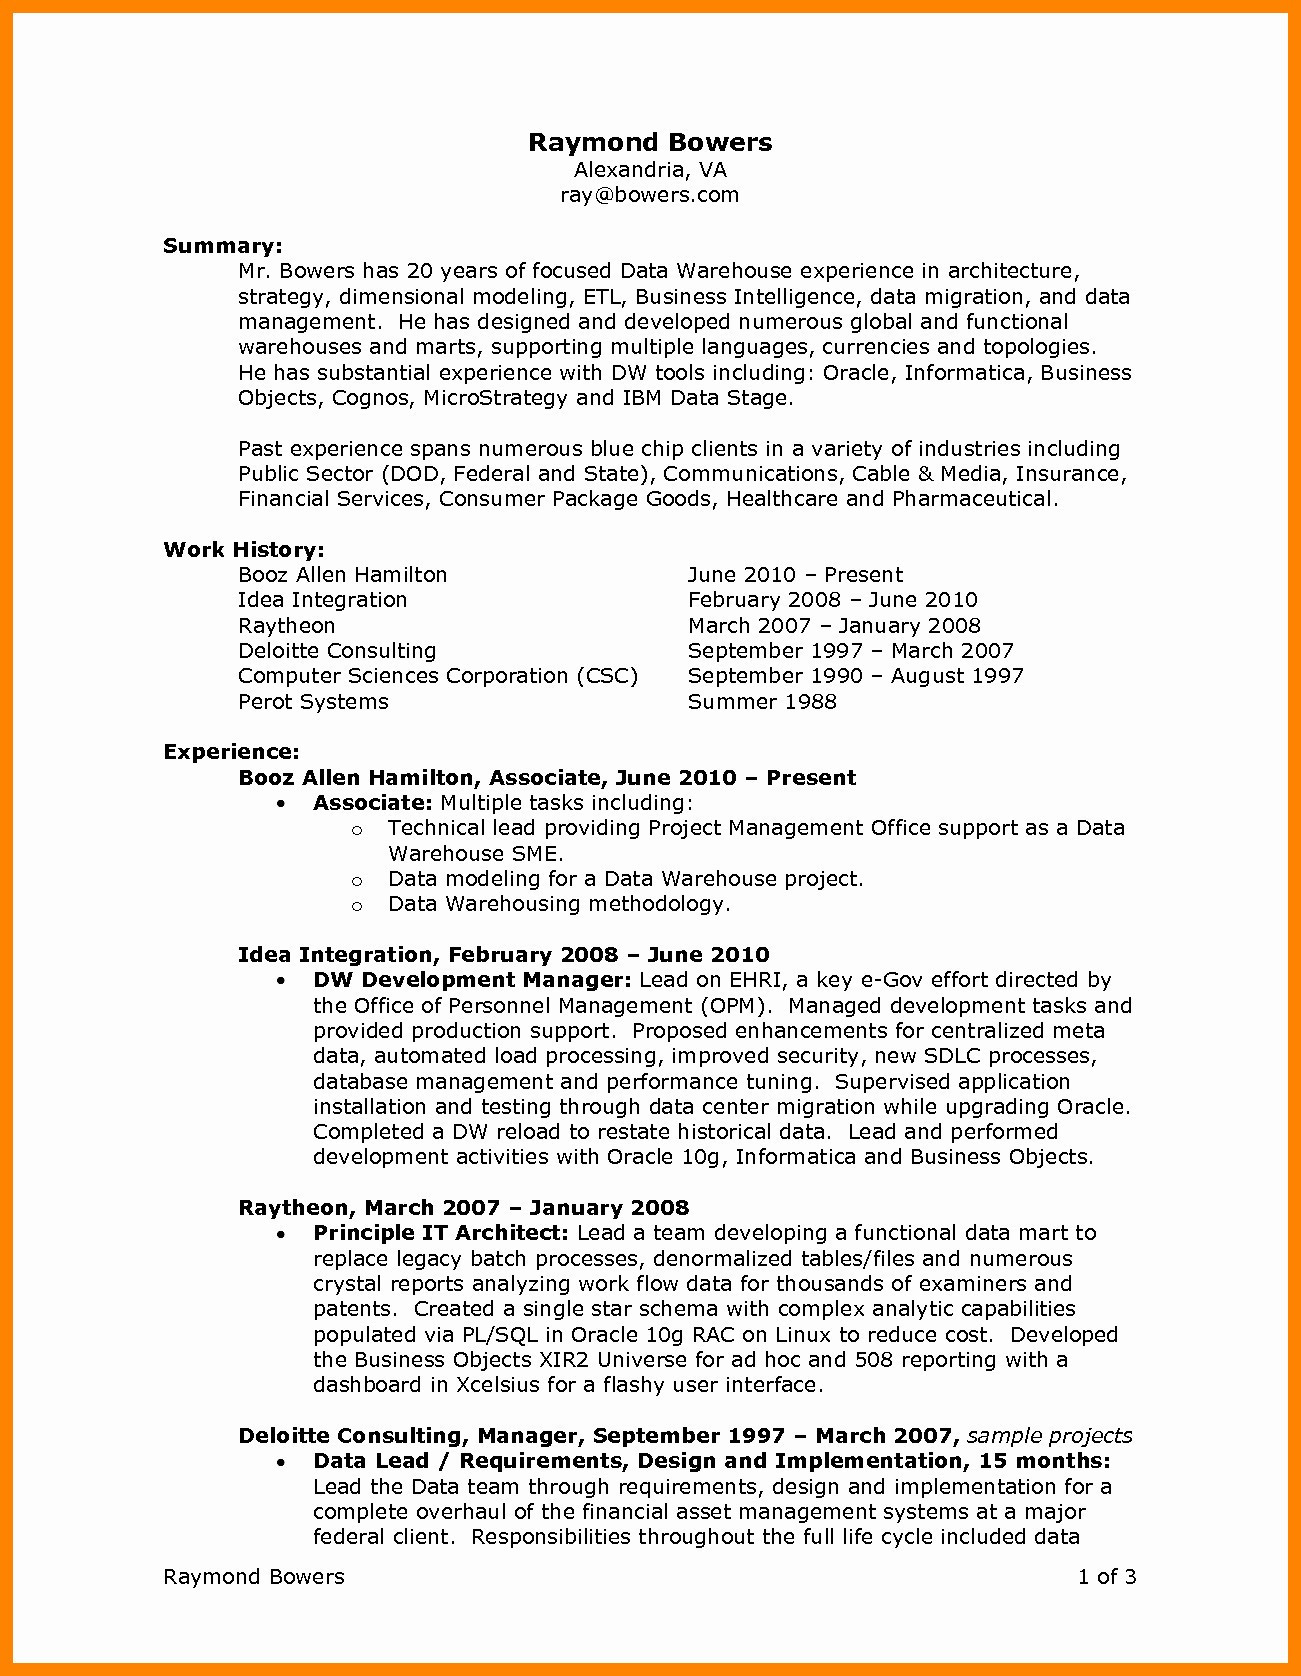 Internal Resume Examples - Resume for Internal Promotion Template Free Downloads Beautiful